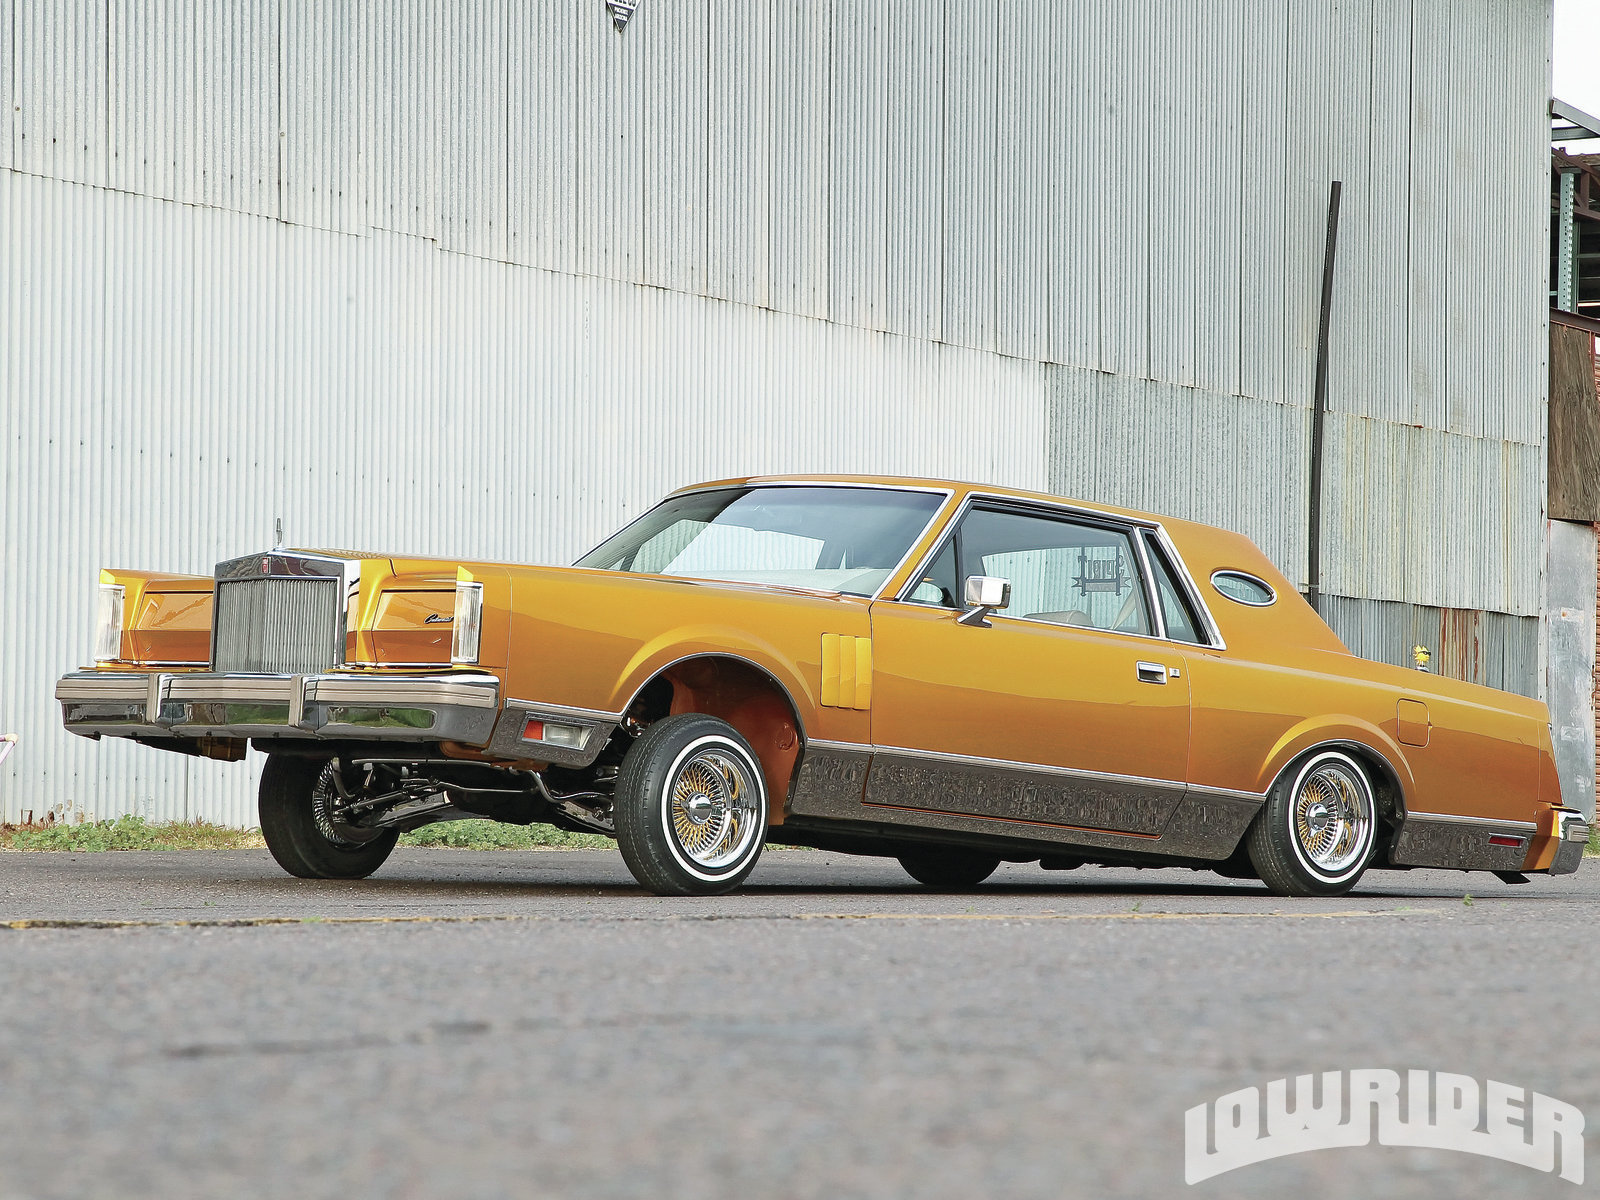 1983 Lincoln Continental - Lowrider Magazine